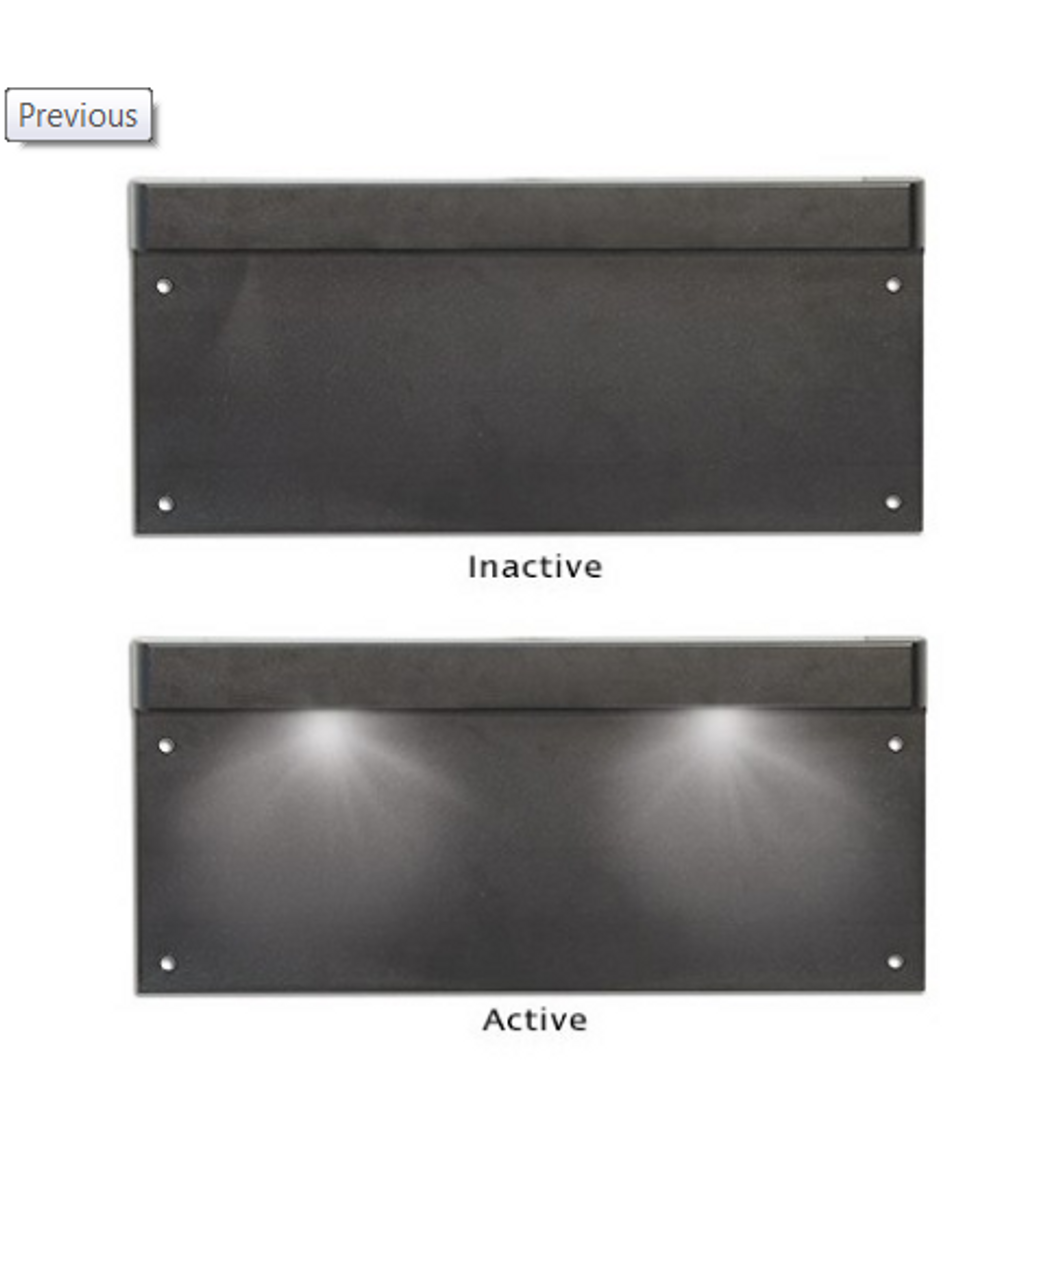 47aa2b8fdb7 LP1 - Licence Plate Lamp Light with Black Housing Single Pack. LED Auto  Lamps.